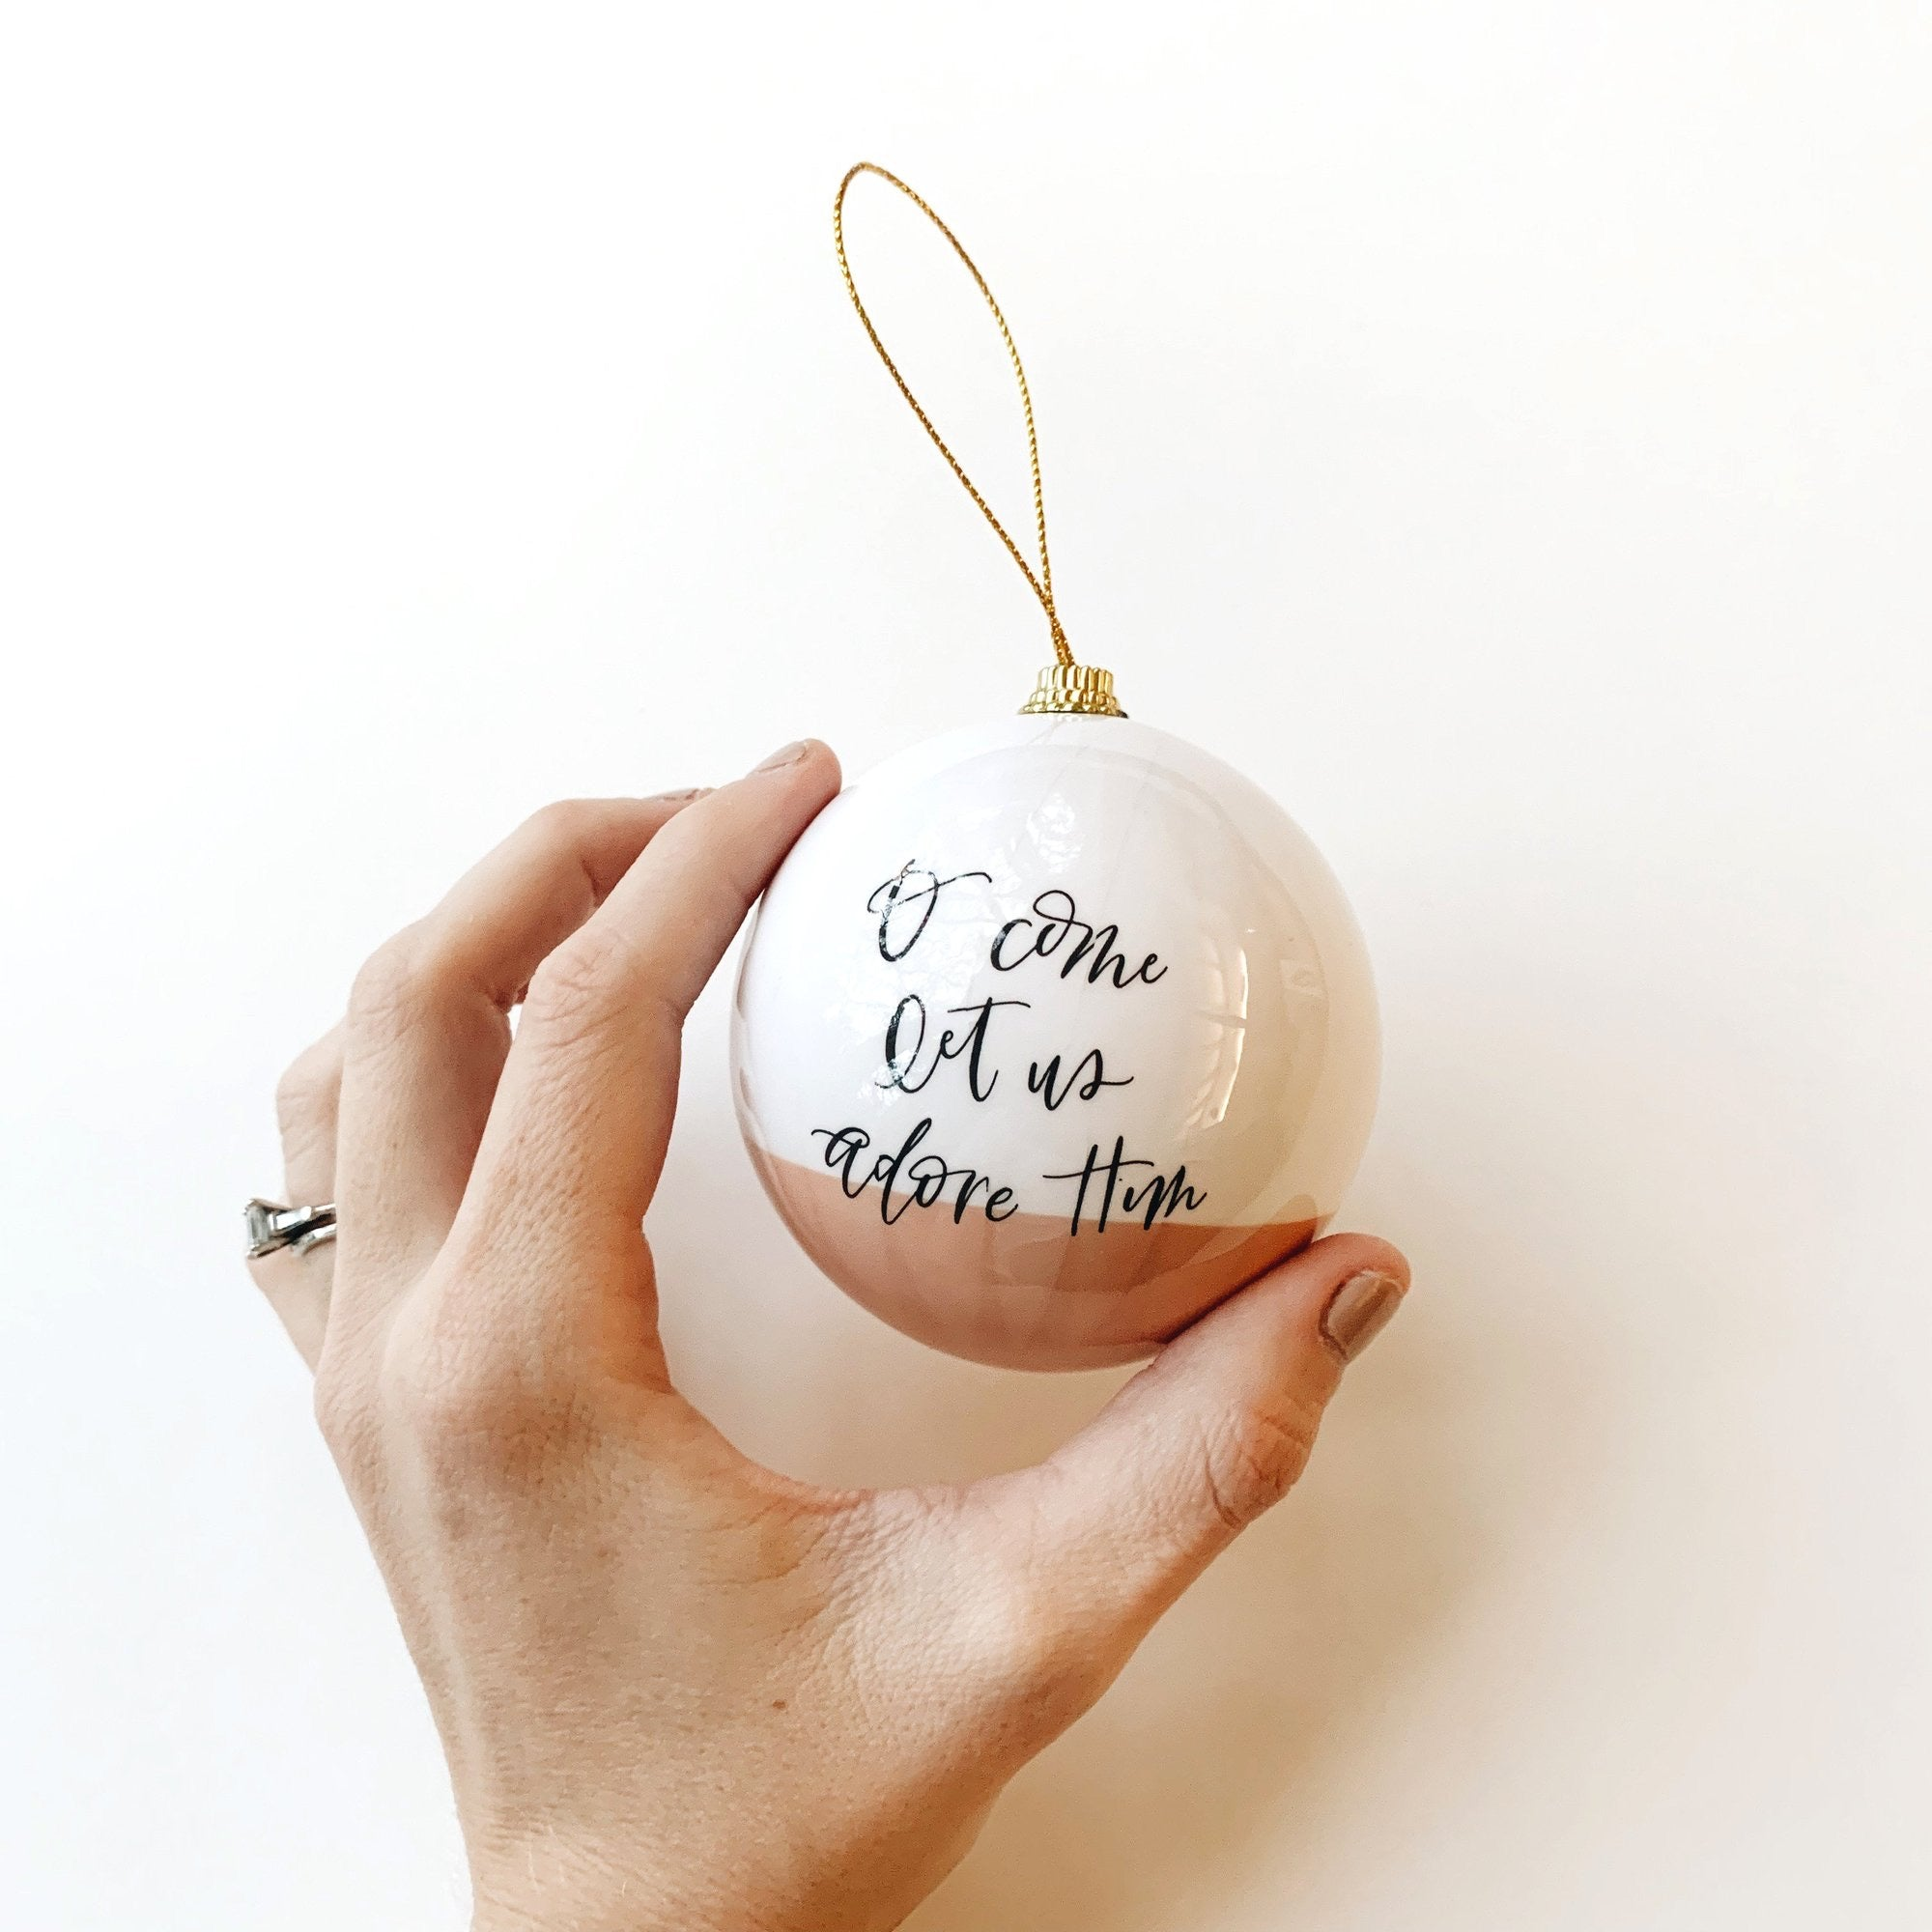 'O Come Let Us Adore Him' Christmas Ornament